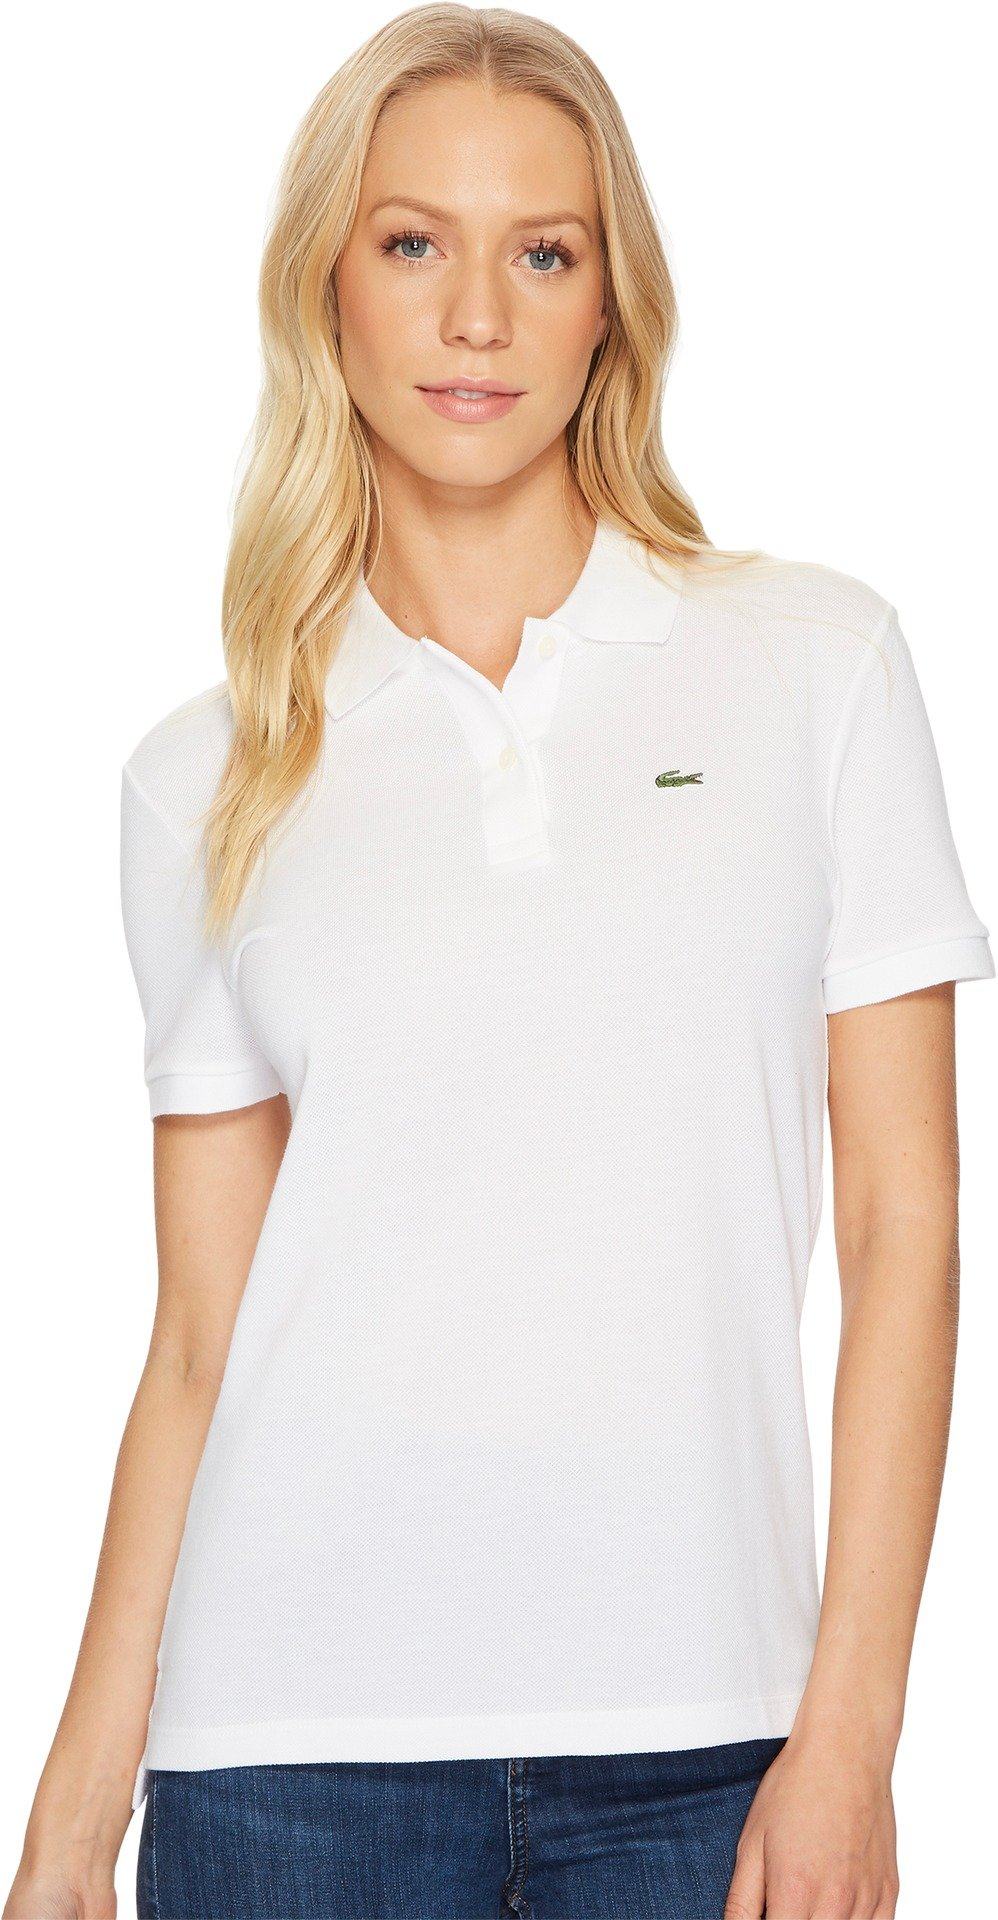 Lacoste Women's Classic Fit Short Sleeve Soft Cotton Petit Piqué Polo, White, 6